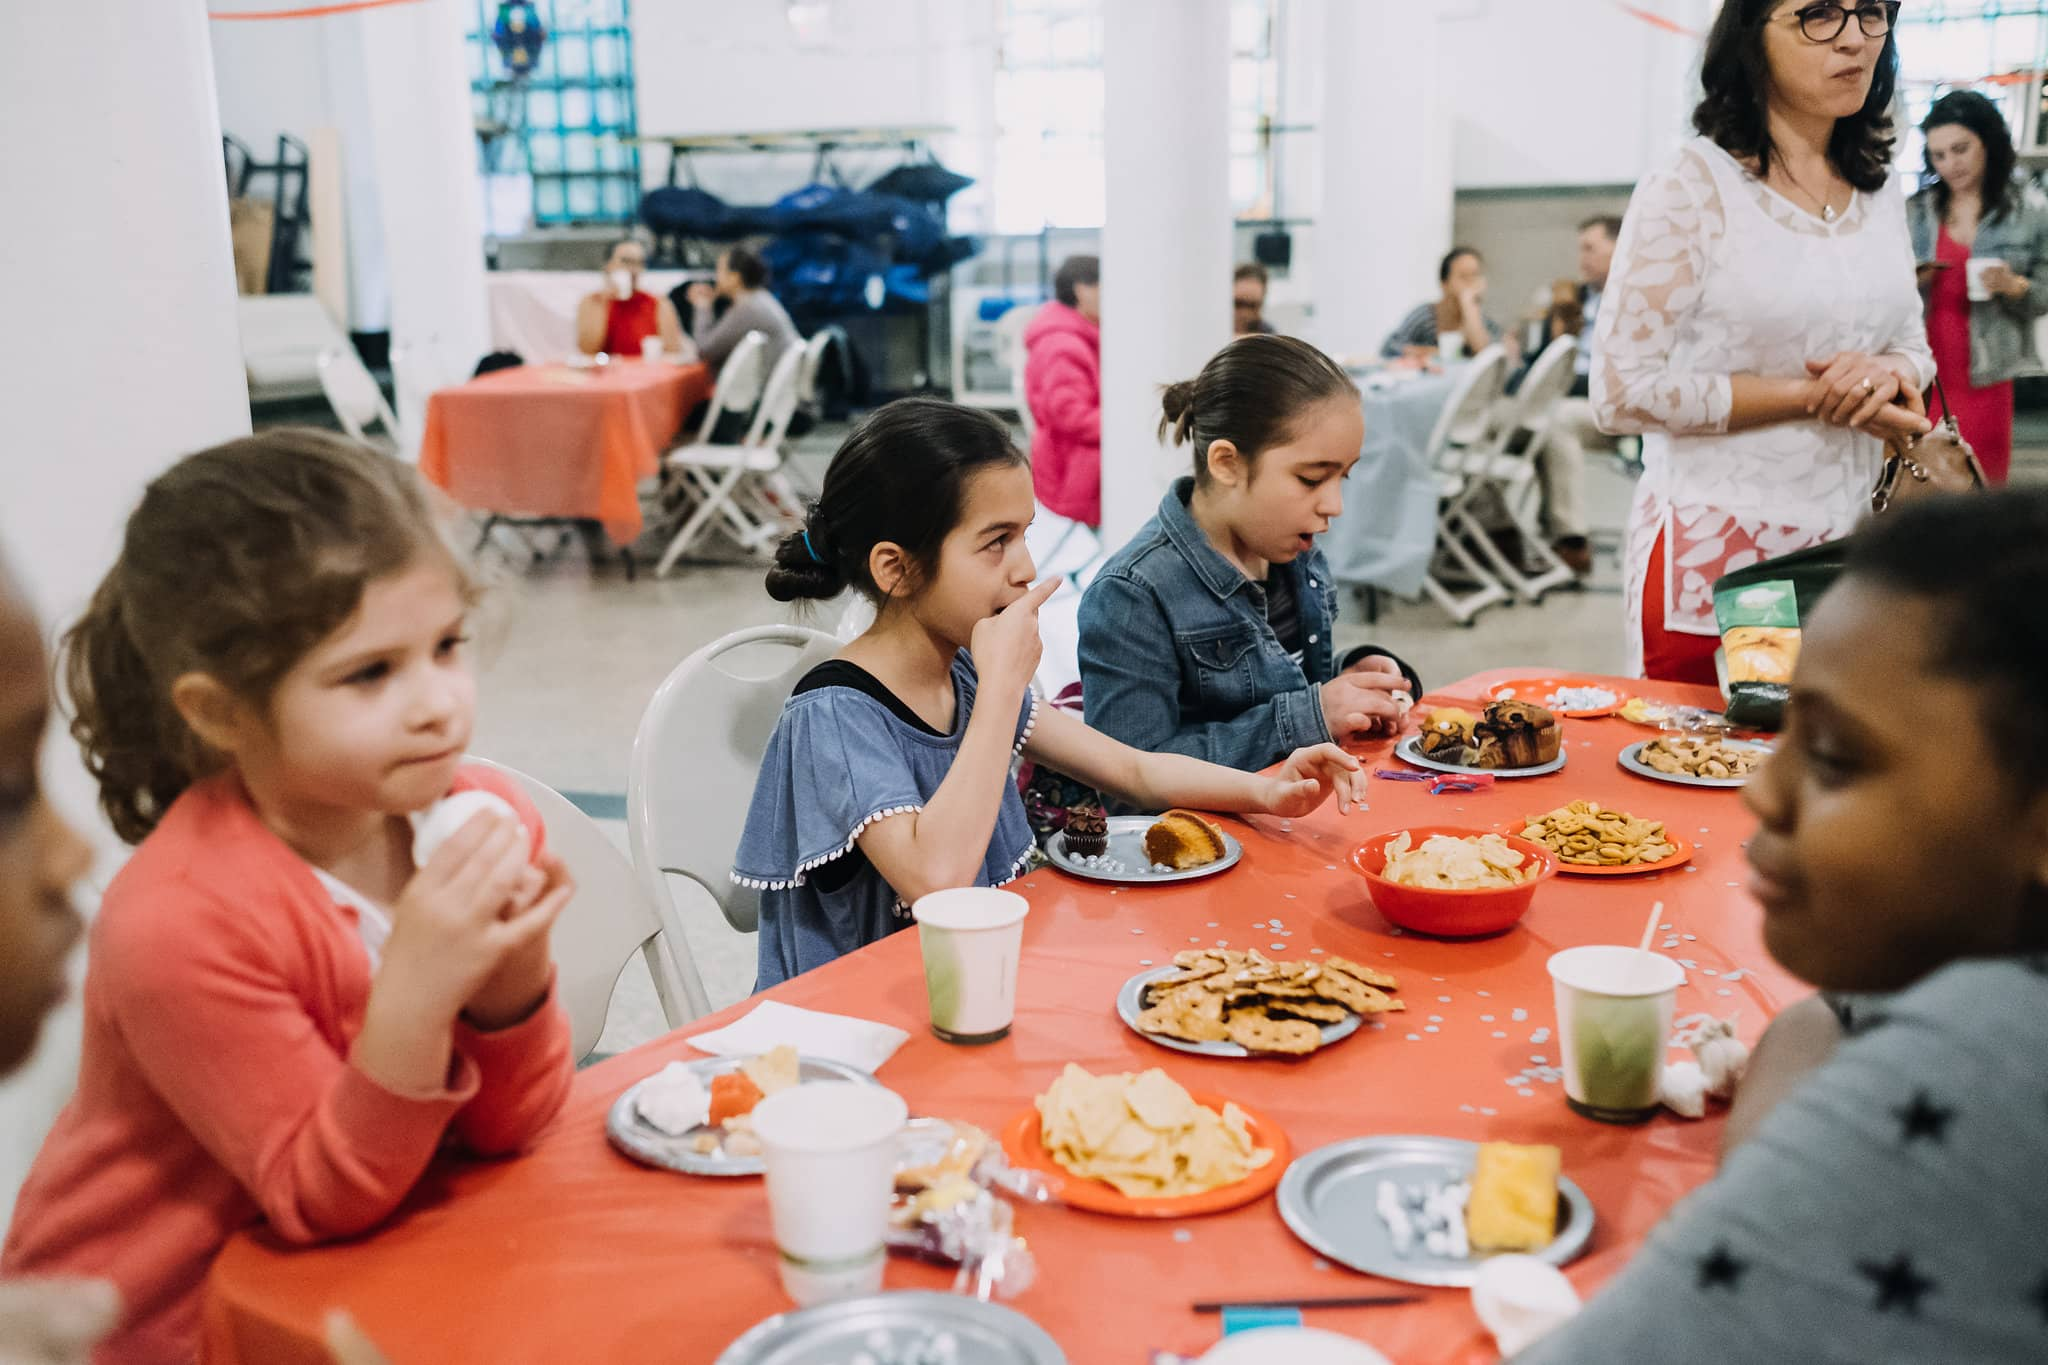 table-food-youth-kids-eating-mass-st-francis-de-sales-church-new-york-city.jpg